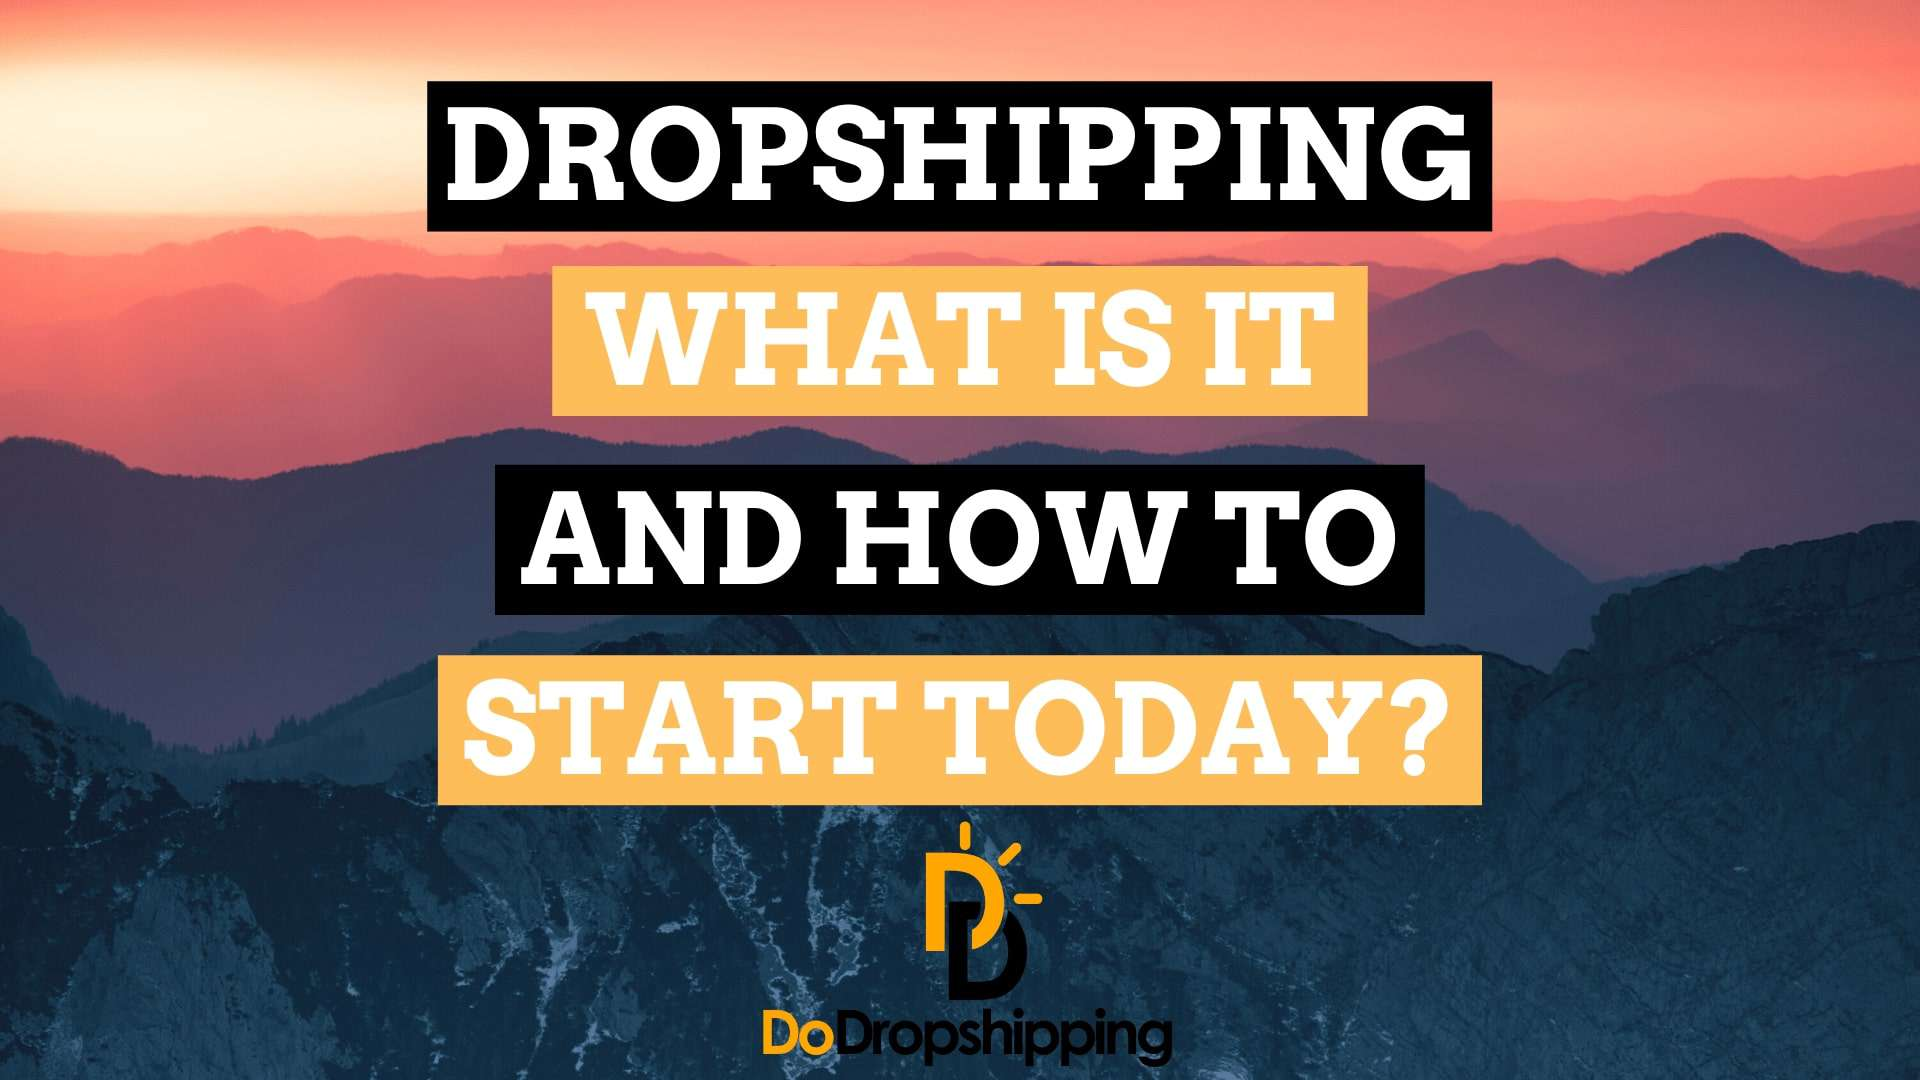 Dropshipping for Beginners: What Is It & How to Start Today in 2021?